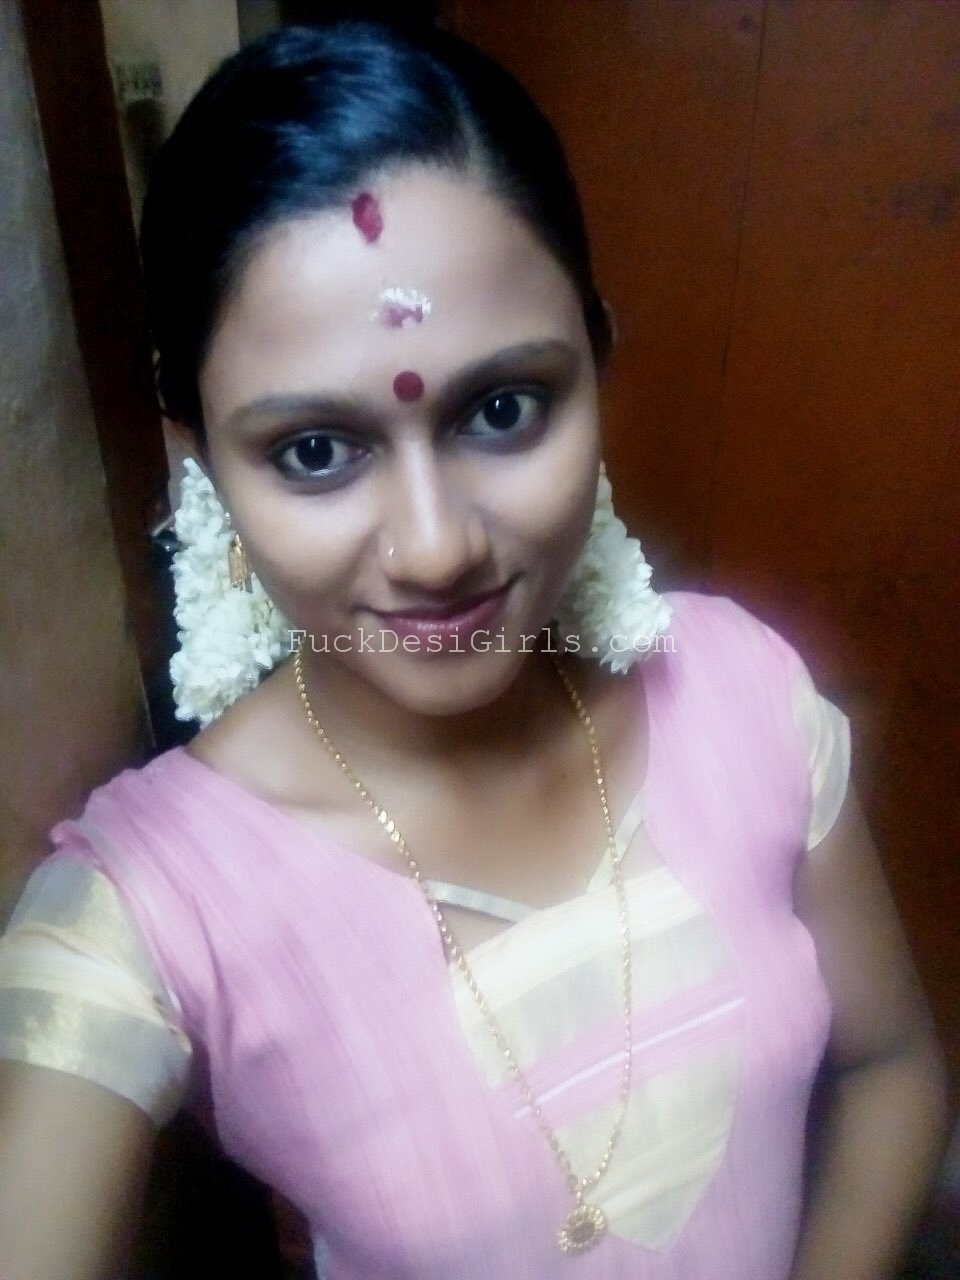 Shay Tamil Teen Girls Naked Nude Sex XXX Pictures – fuckdesigirls ...